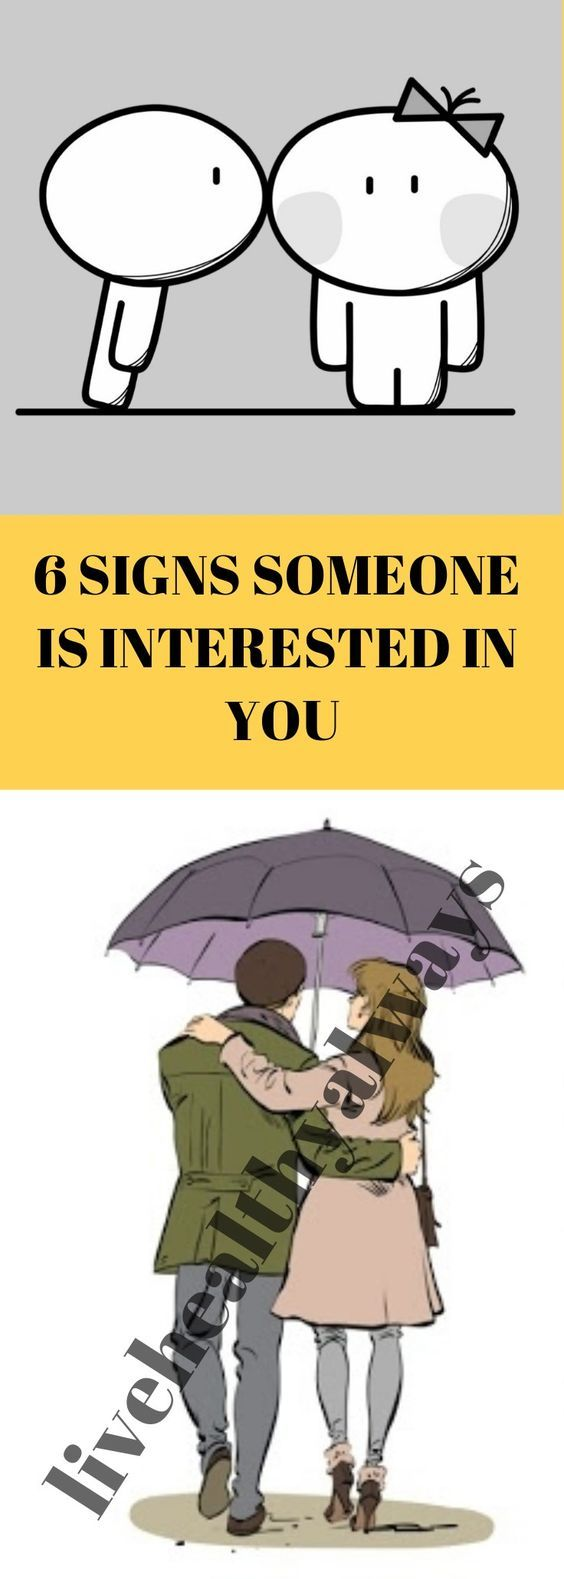 Signs someone is interested in you